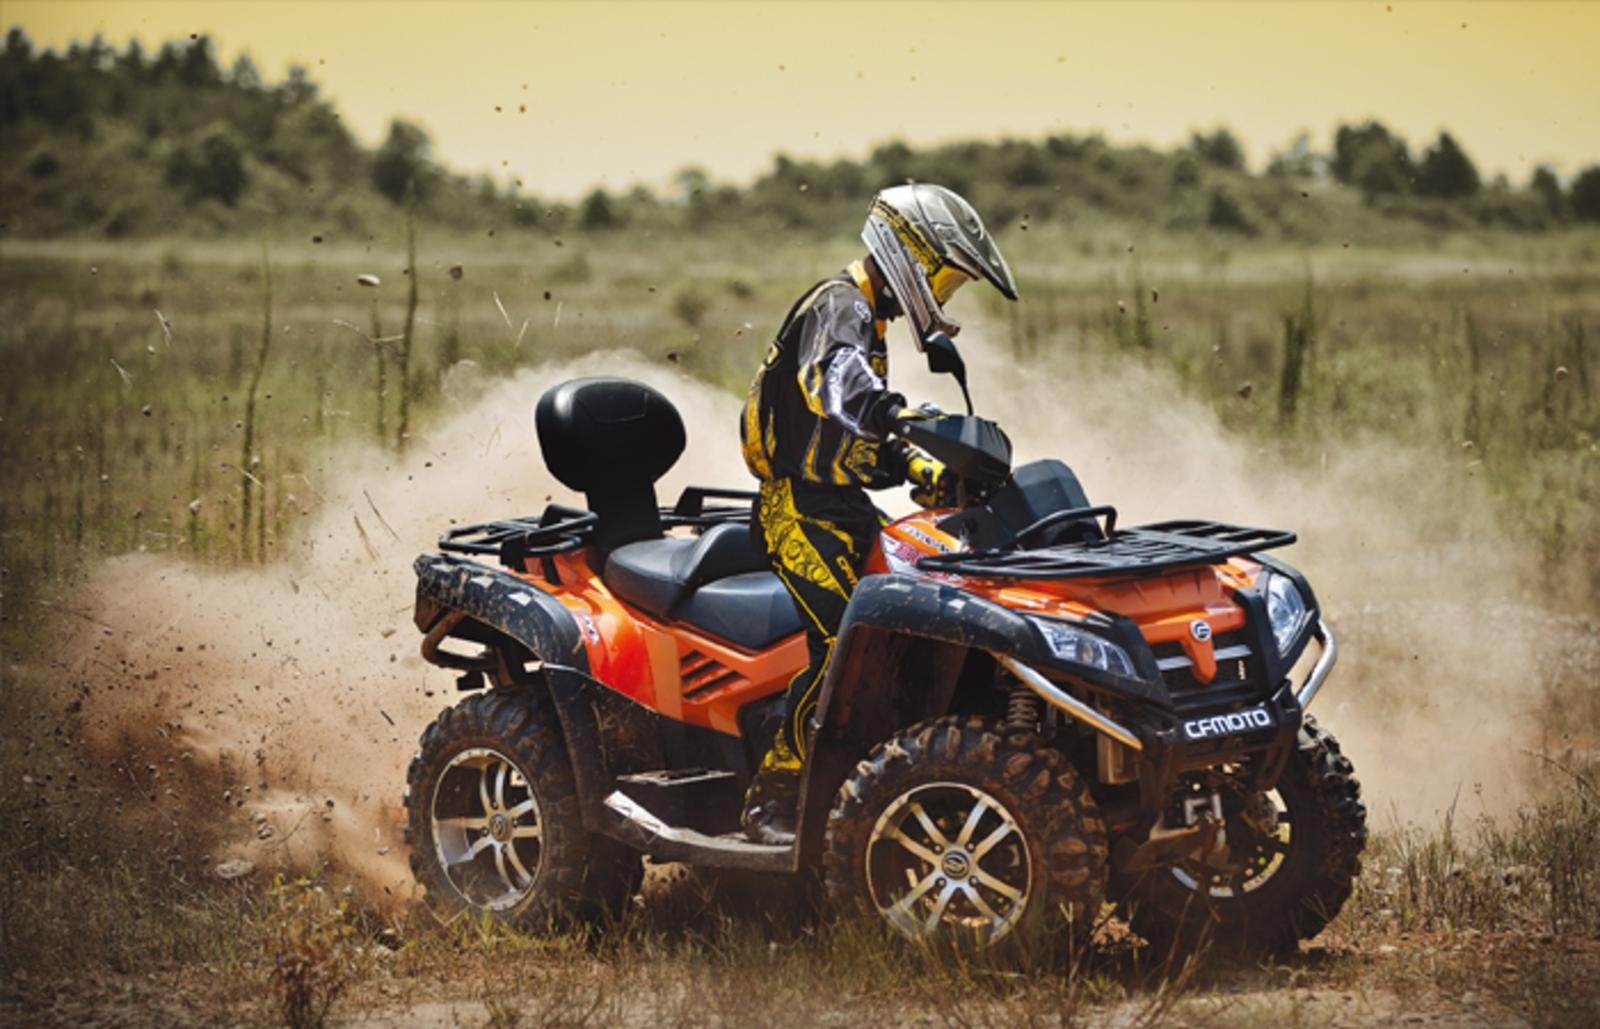 CFMoto Motorcycles: Models, Prices, Reviews, News